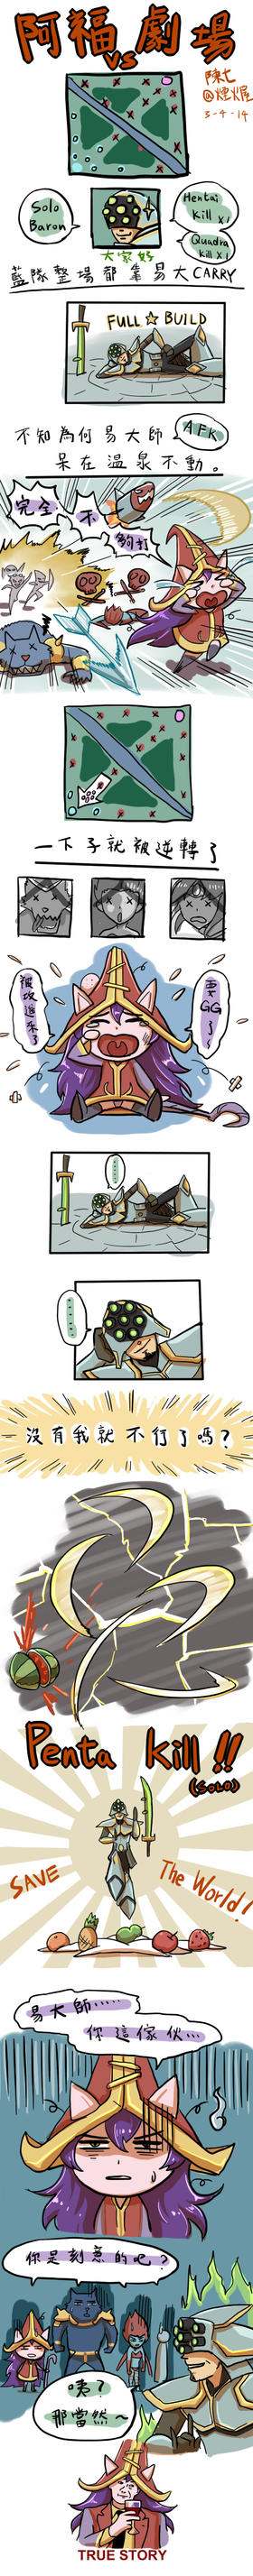 [LOL]Funny! The Ultra Rapid Fire! by chanseven